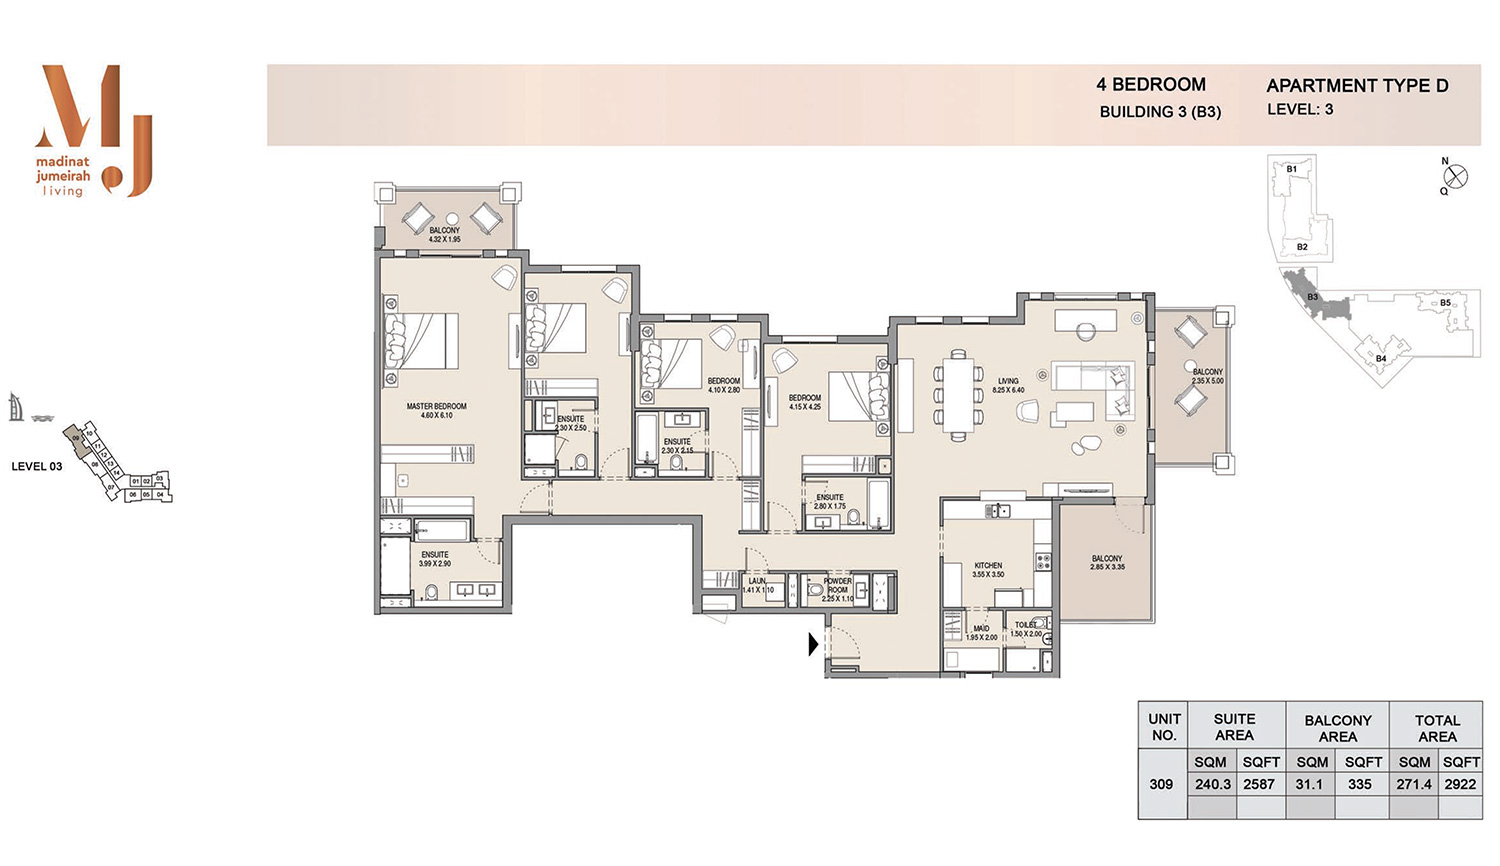 Building3 4 Bedroom, Type D, Levels 3, Size 2922 sq.ft